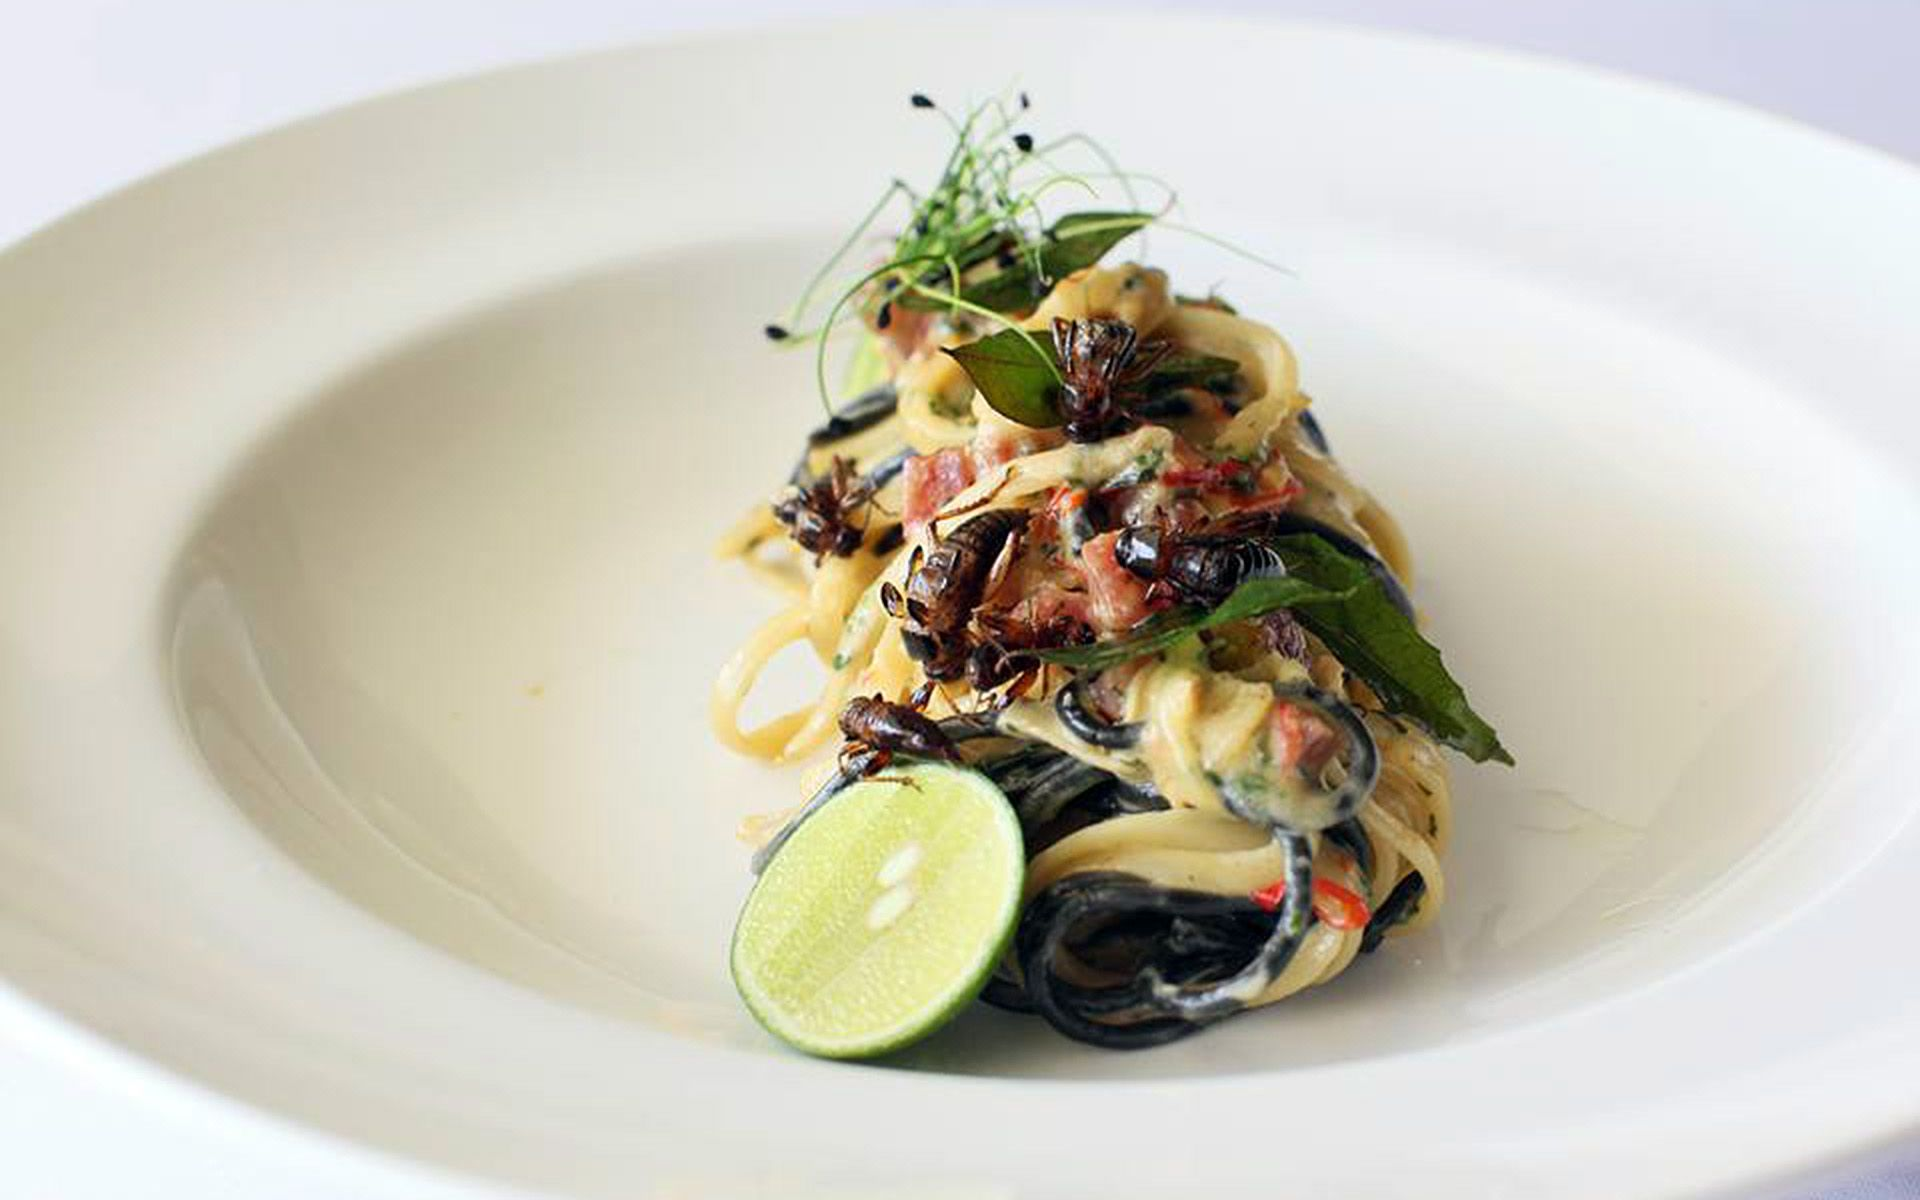 Gastro Bar by Burgeon, which closed its doors in July 2016, was likely the first restaurant in Selangor to serve insects in a fine dining setting. Pictured here is their Curried Cricket Carbonara.